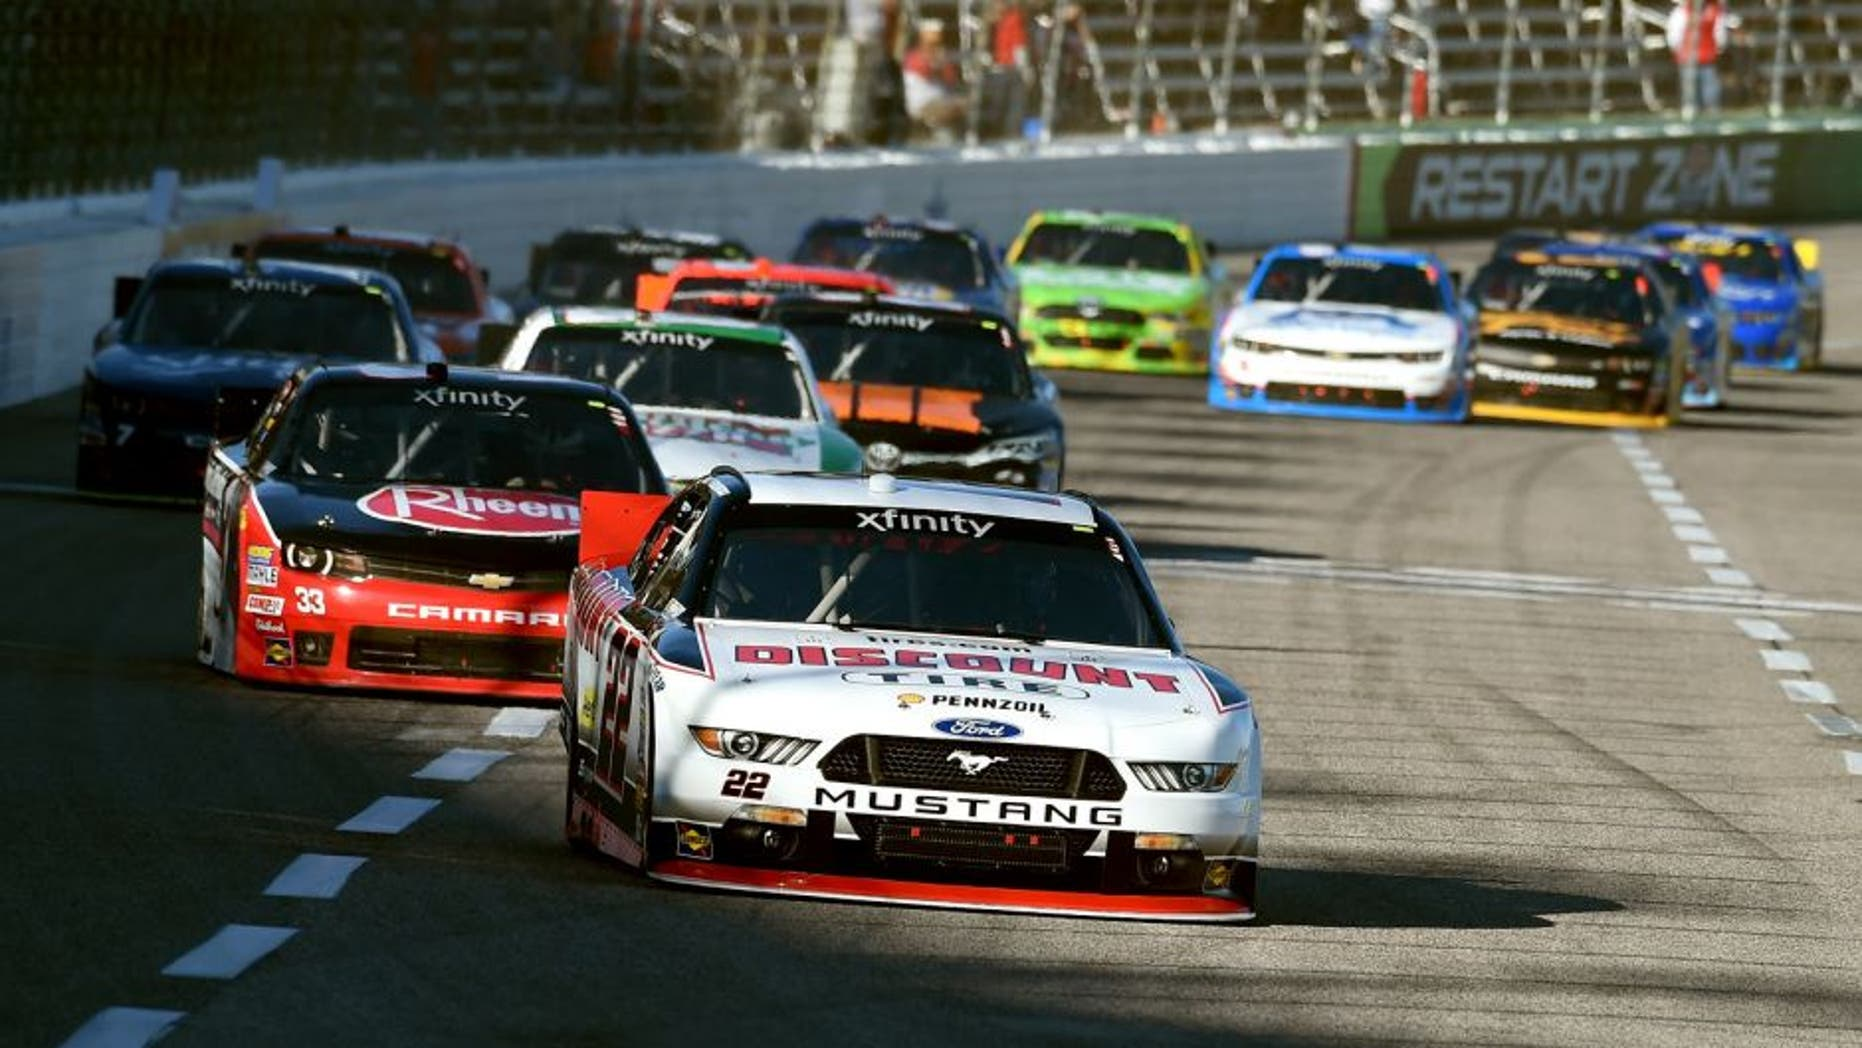 FORT WORTH, TX - NOVEMBER 07: Brad Keselowski, driver of the #22 Discount Tire Ford, leads a pack of cars during the NASCAR XFINITY Series O'Reilly Auto Parts Challenge at Texas Motor Speedway on November 7, 2015 in Fort Worth, Texas. (Photo by Rainier Ehrhardt/NASCAR via Getty Images)